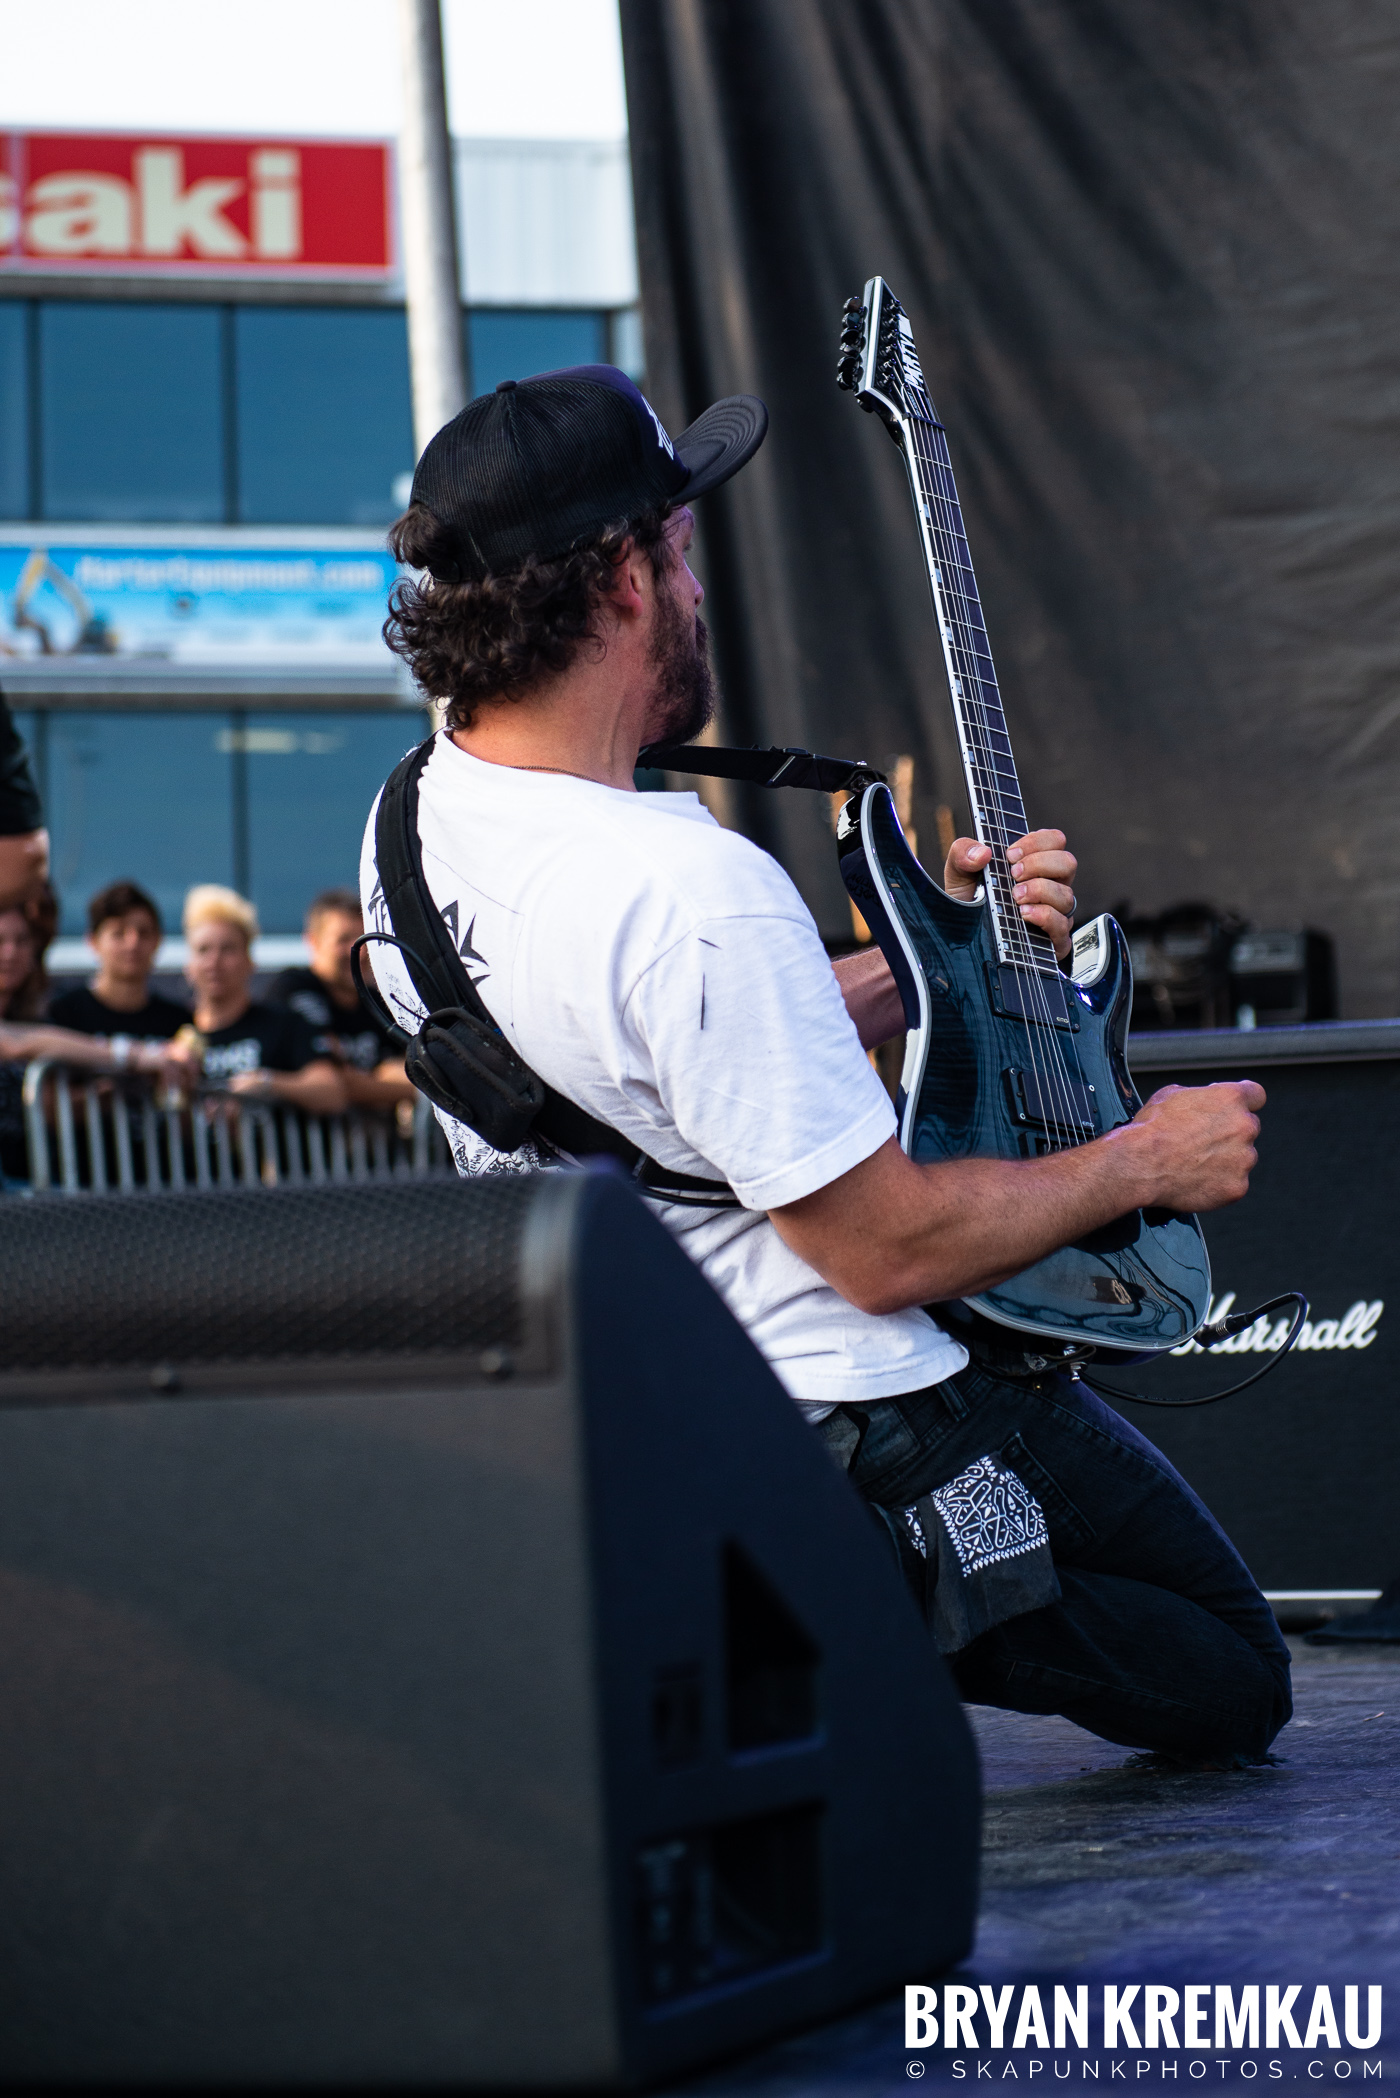 Suicidal Tendencies @ The Bash Music & Craft Beer Festival, Old Bridge Township Raceway Park, Englishtown, NJ - 6.2.19 (5)